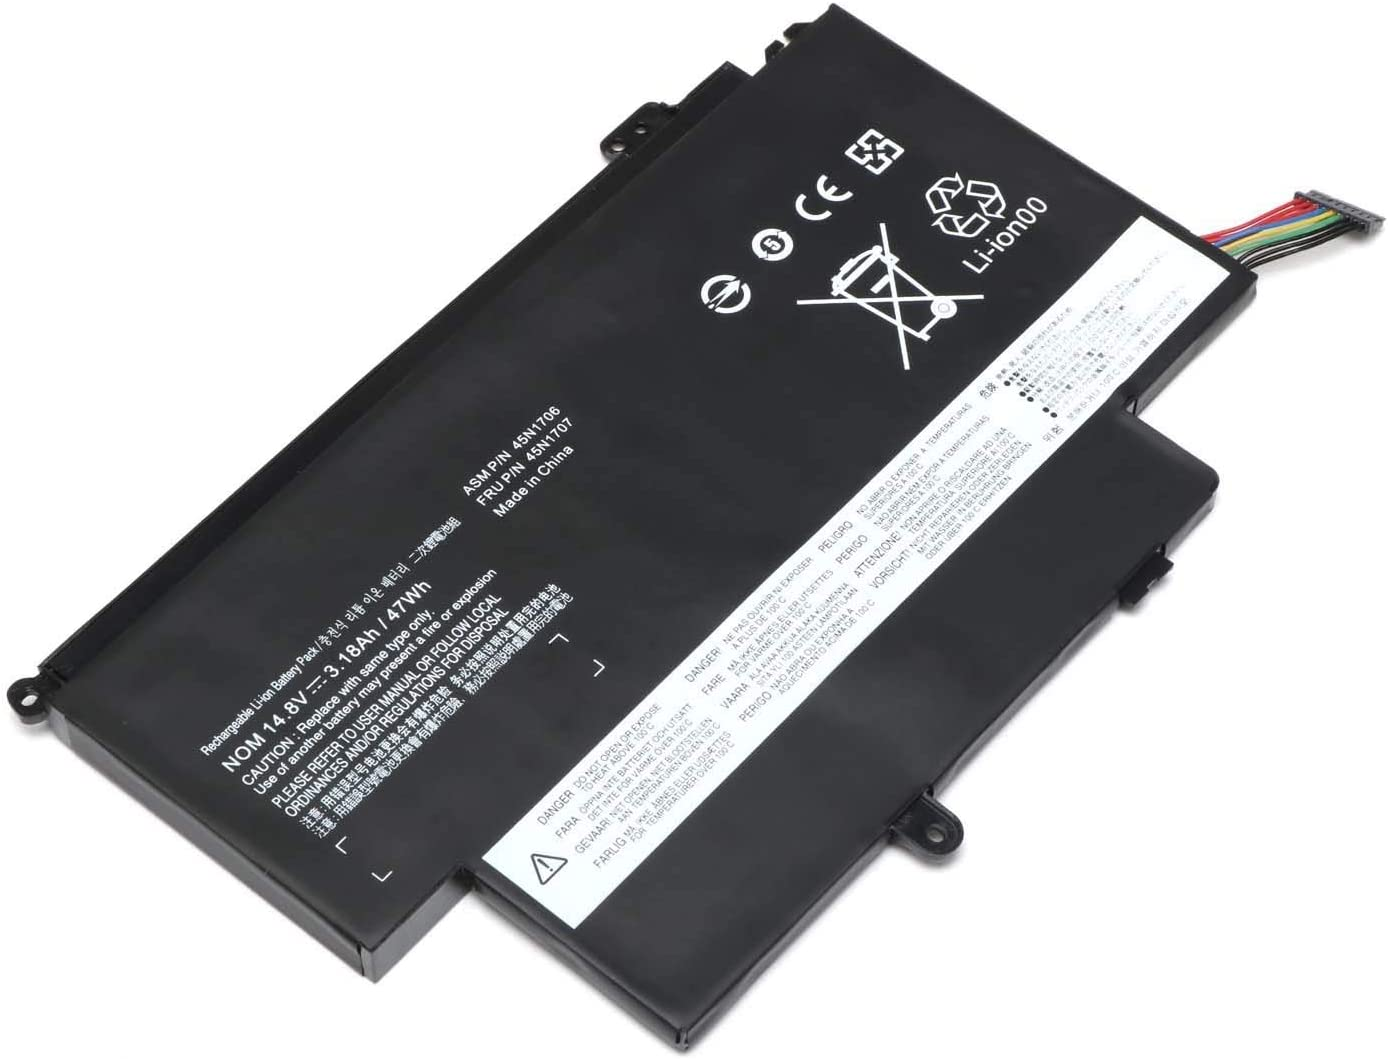 SERNN 45N1704 Replacement Battery Compatible with Lenovo ThinkPad S1 Yoga/ThinkPad Yoga 12 Series 20CD 20DL 20DK 20DL 45N1705 45N1706 45N1707 [14.8V 47Wh]